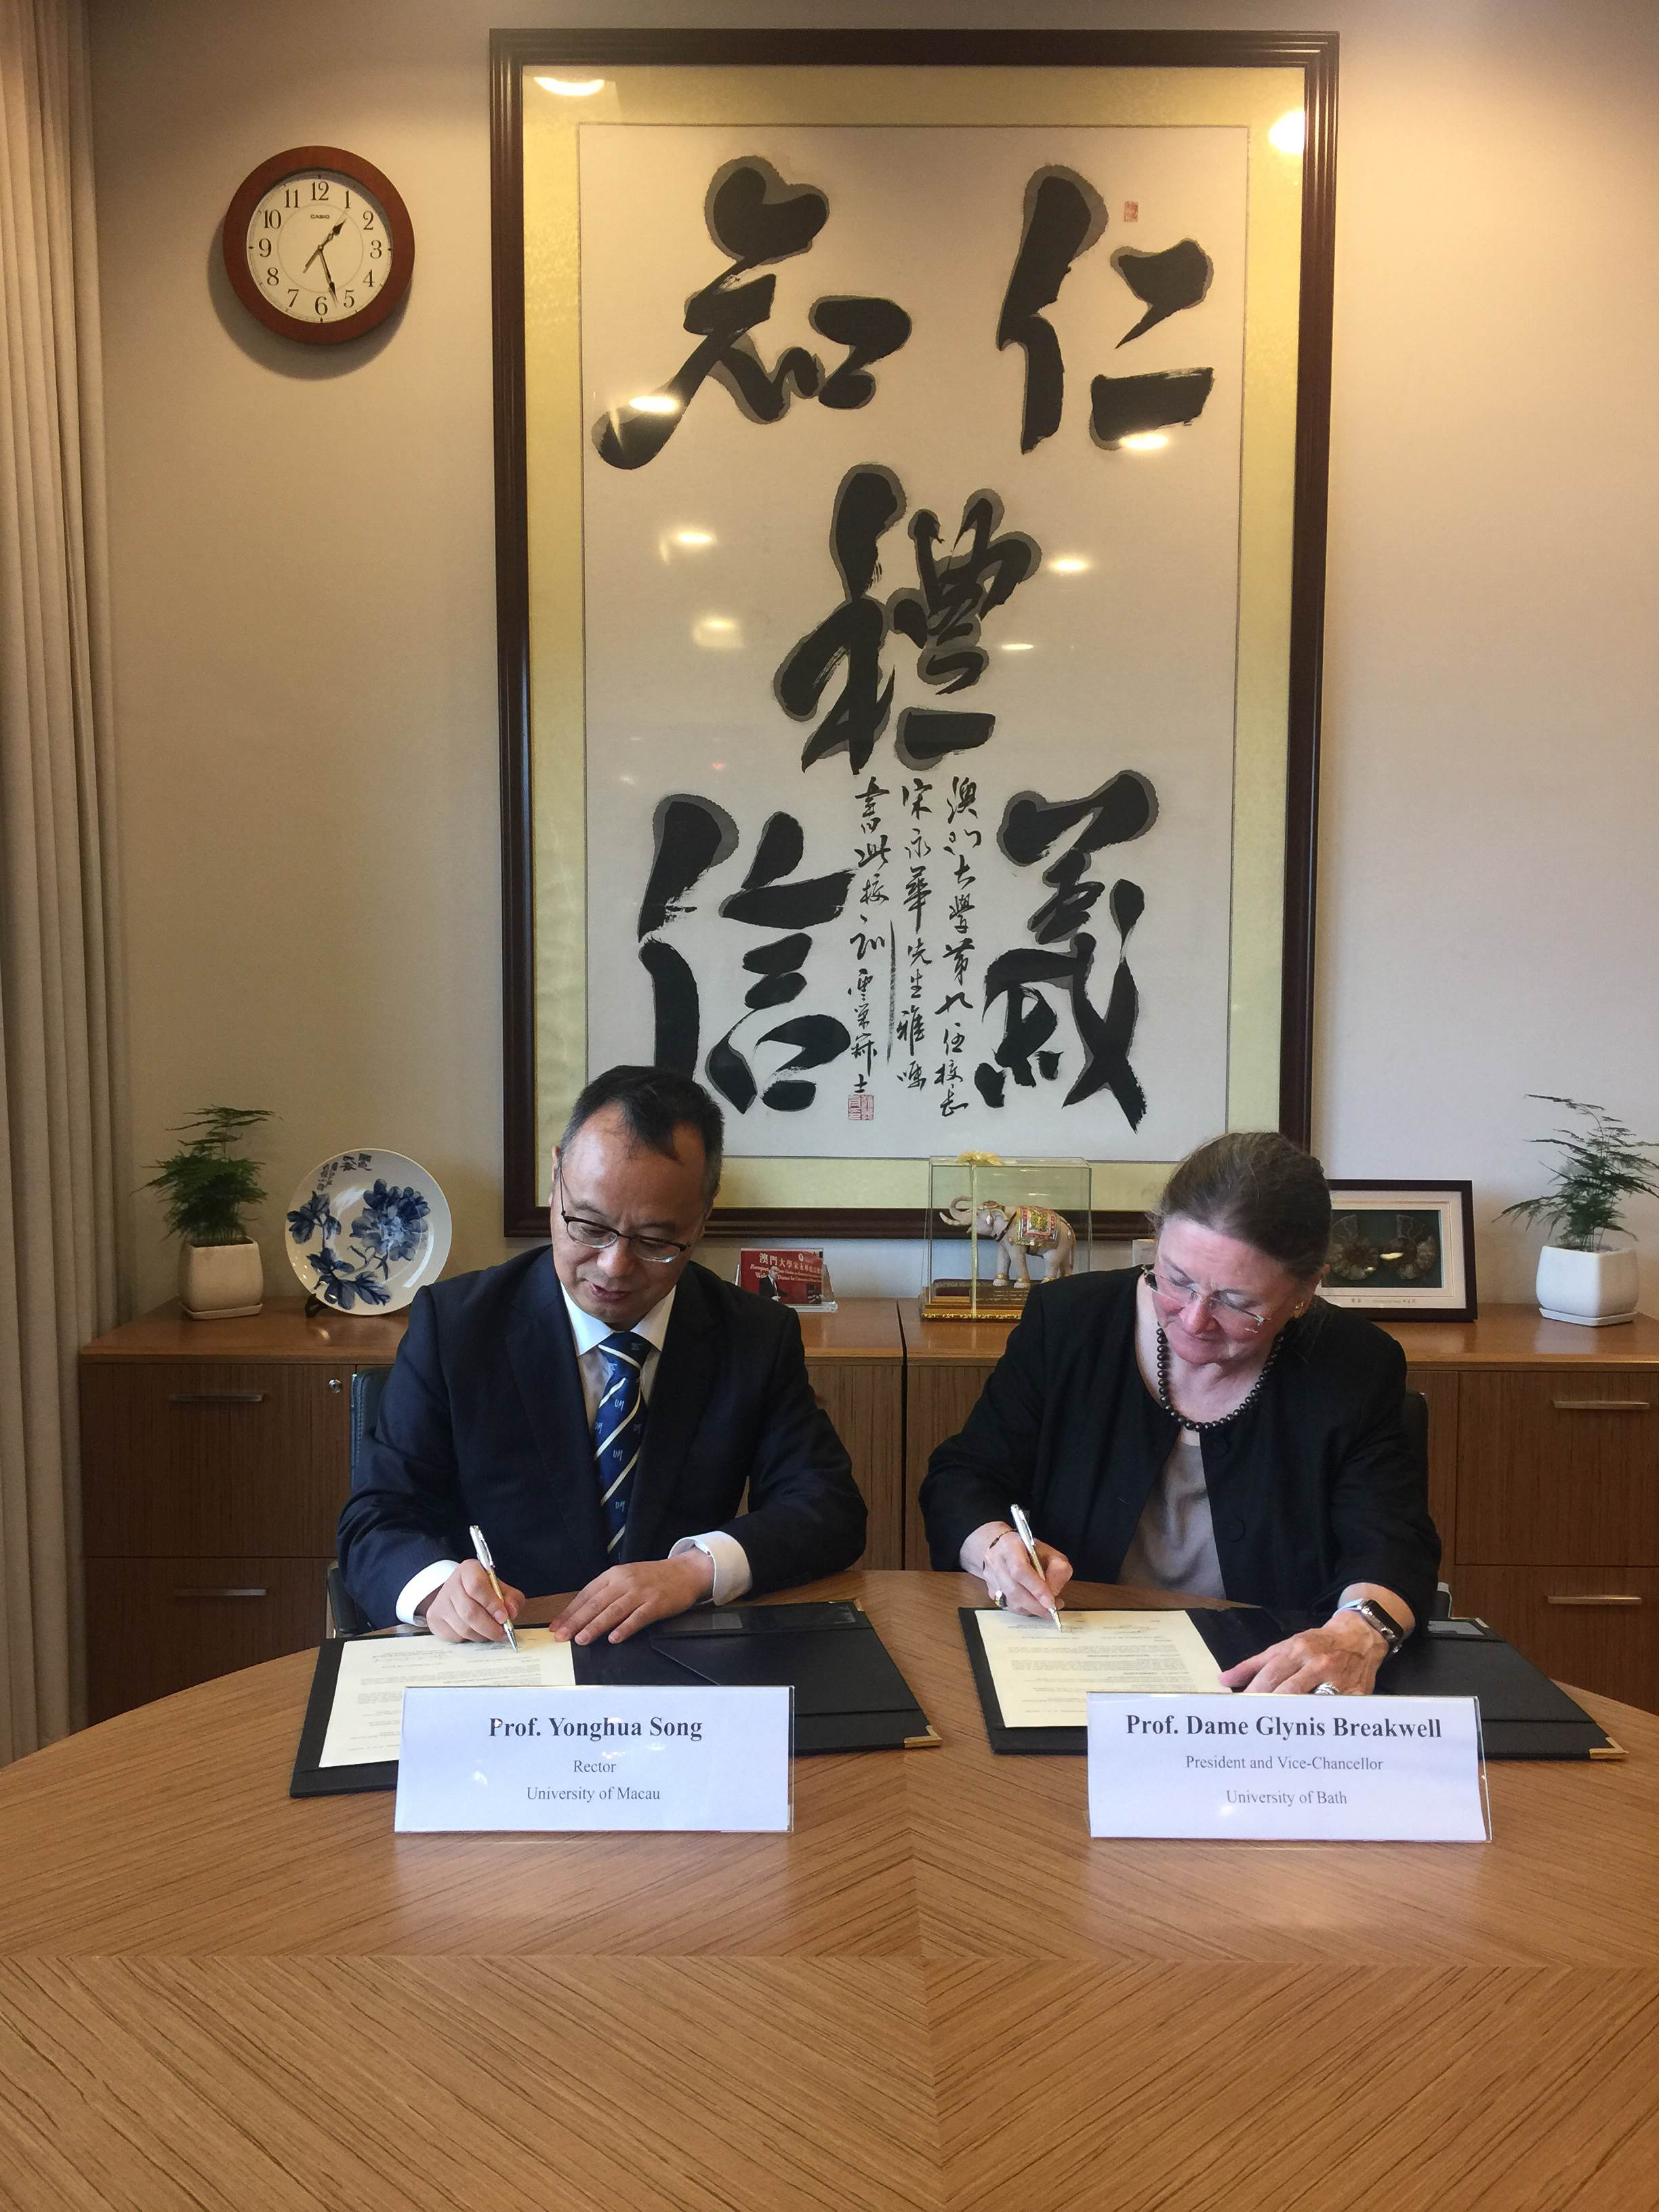 UM Rector Yonghua Song (left) and UB President Breakwell (right) sign the MOU